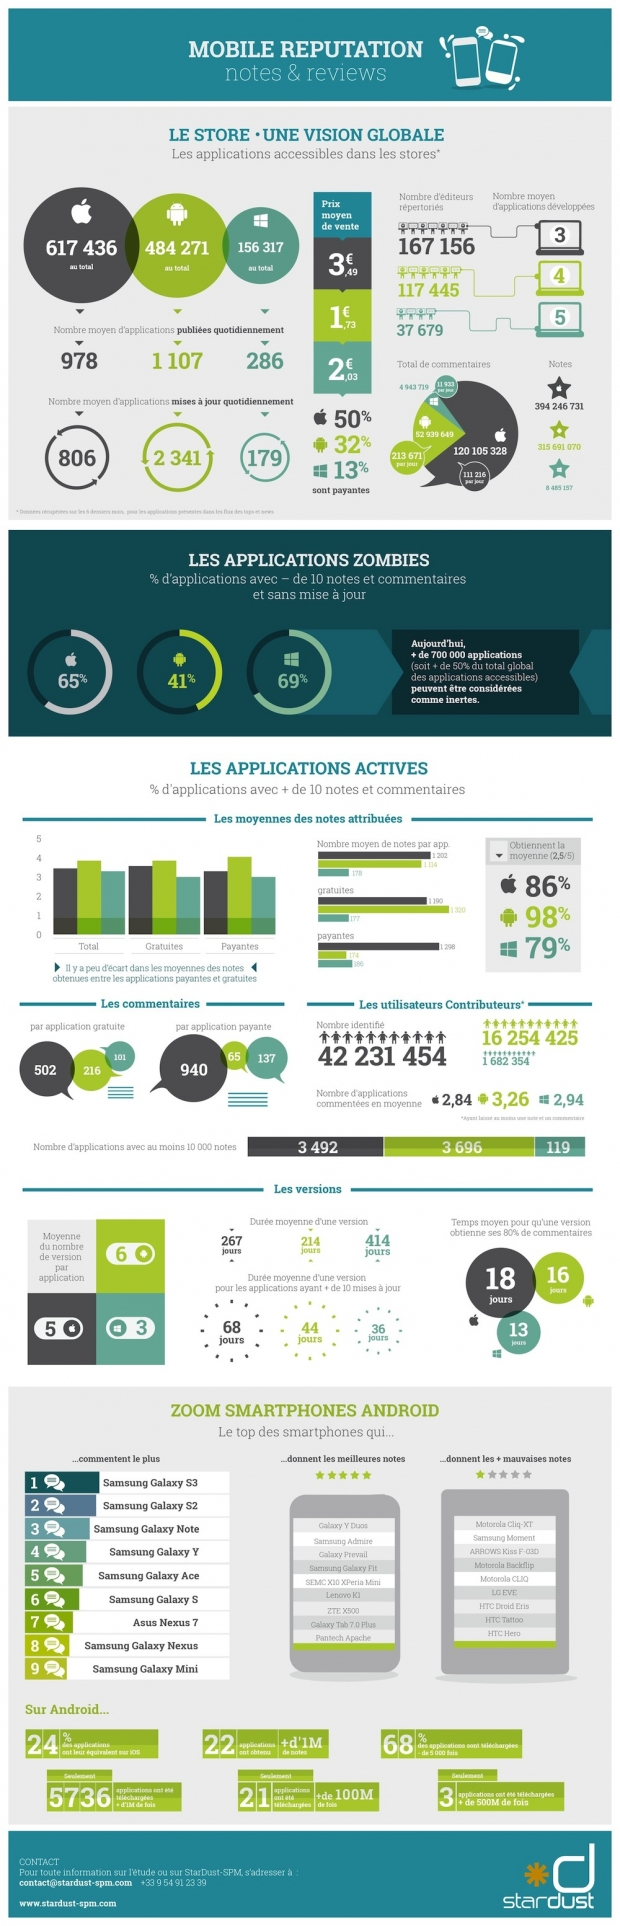 infographie-m-reputation